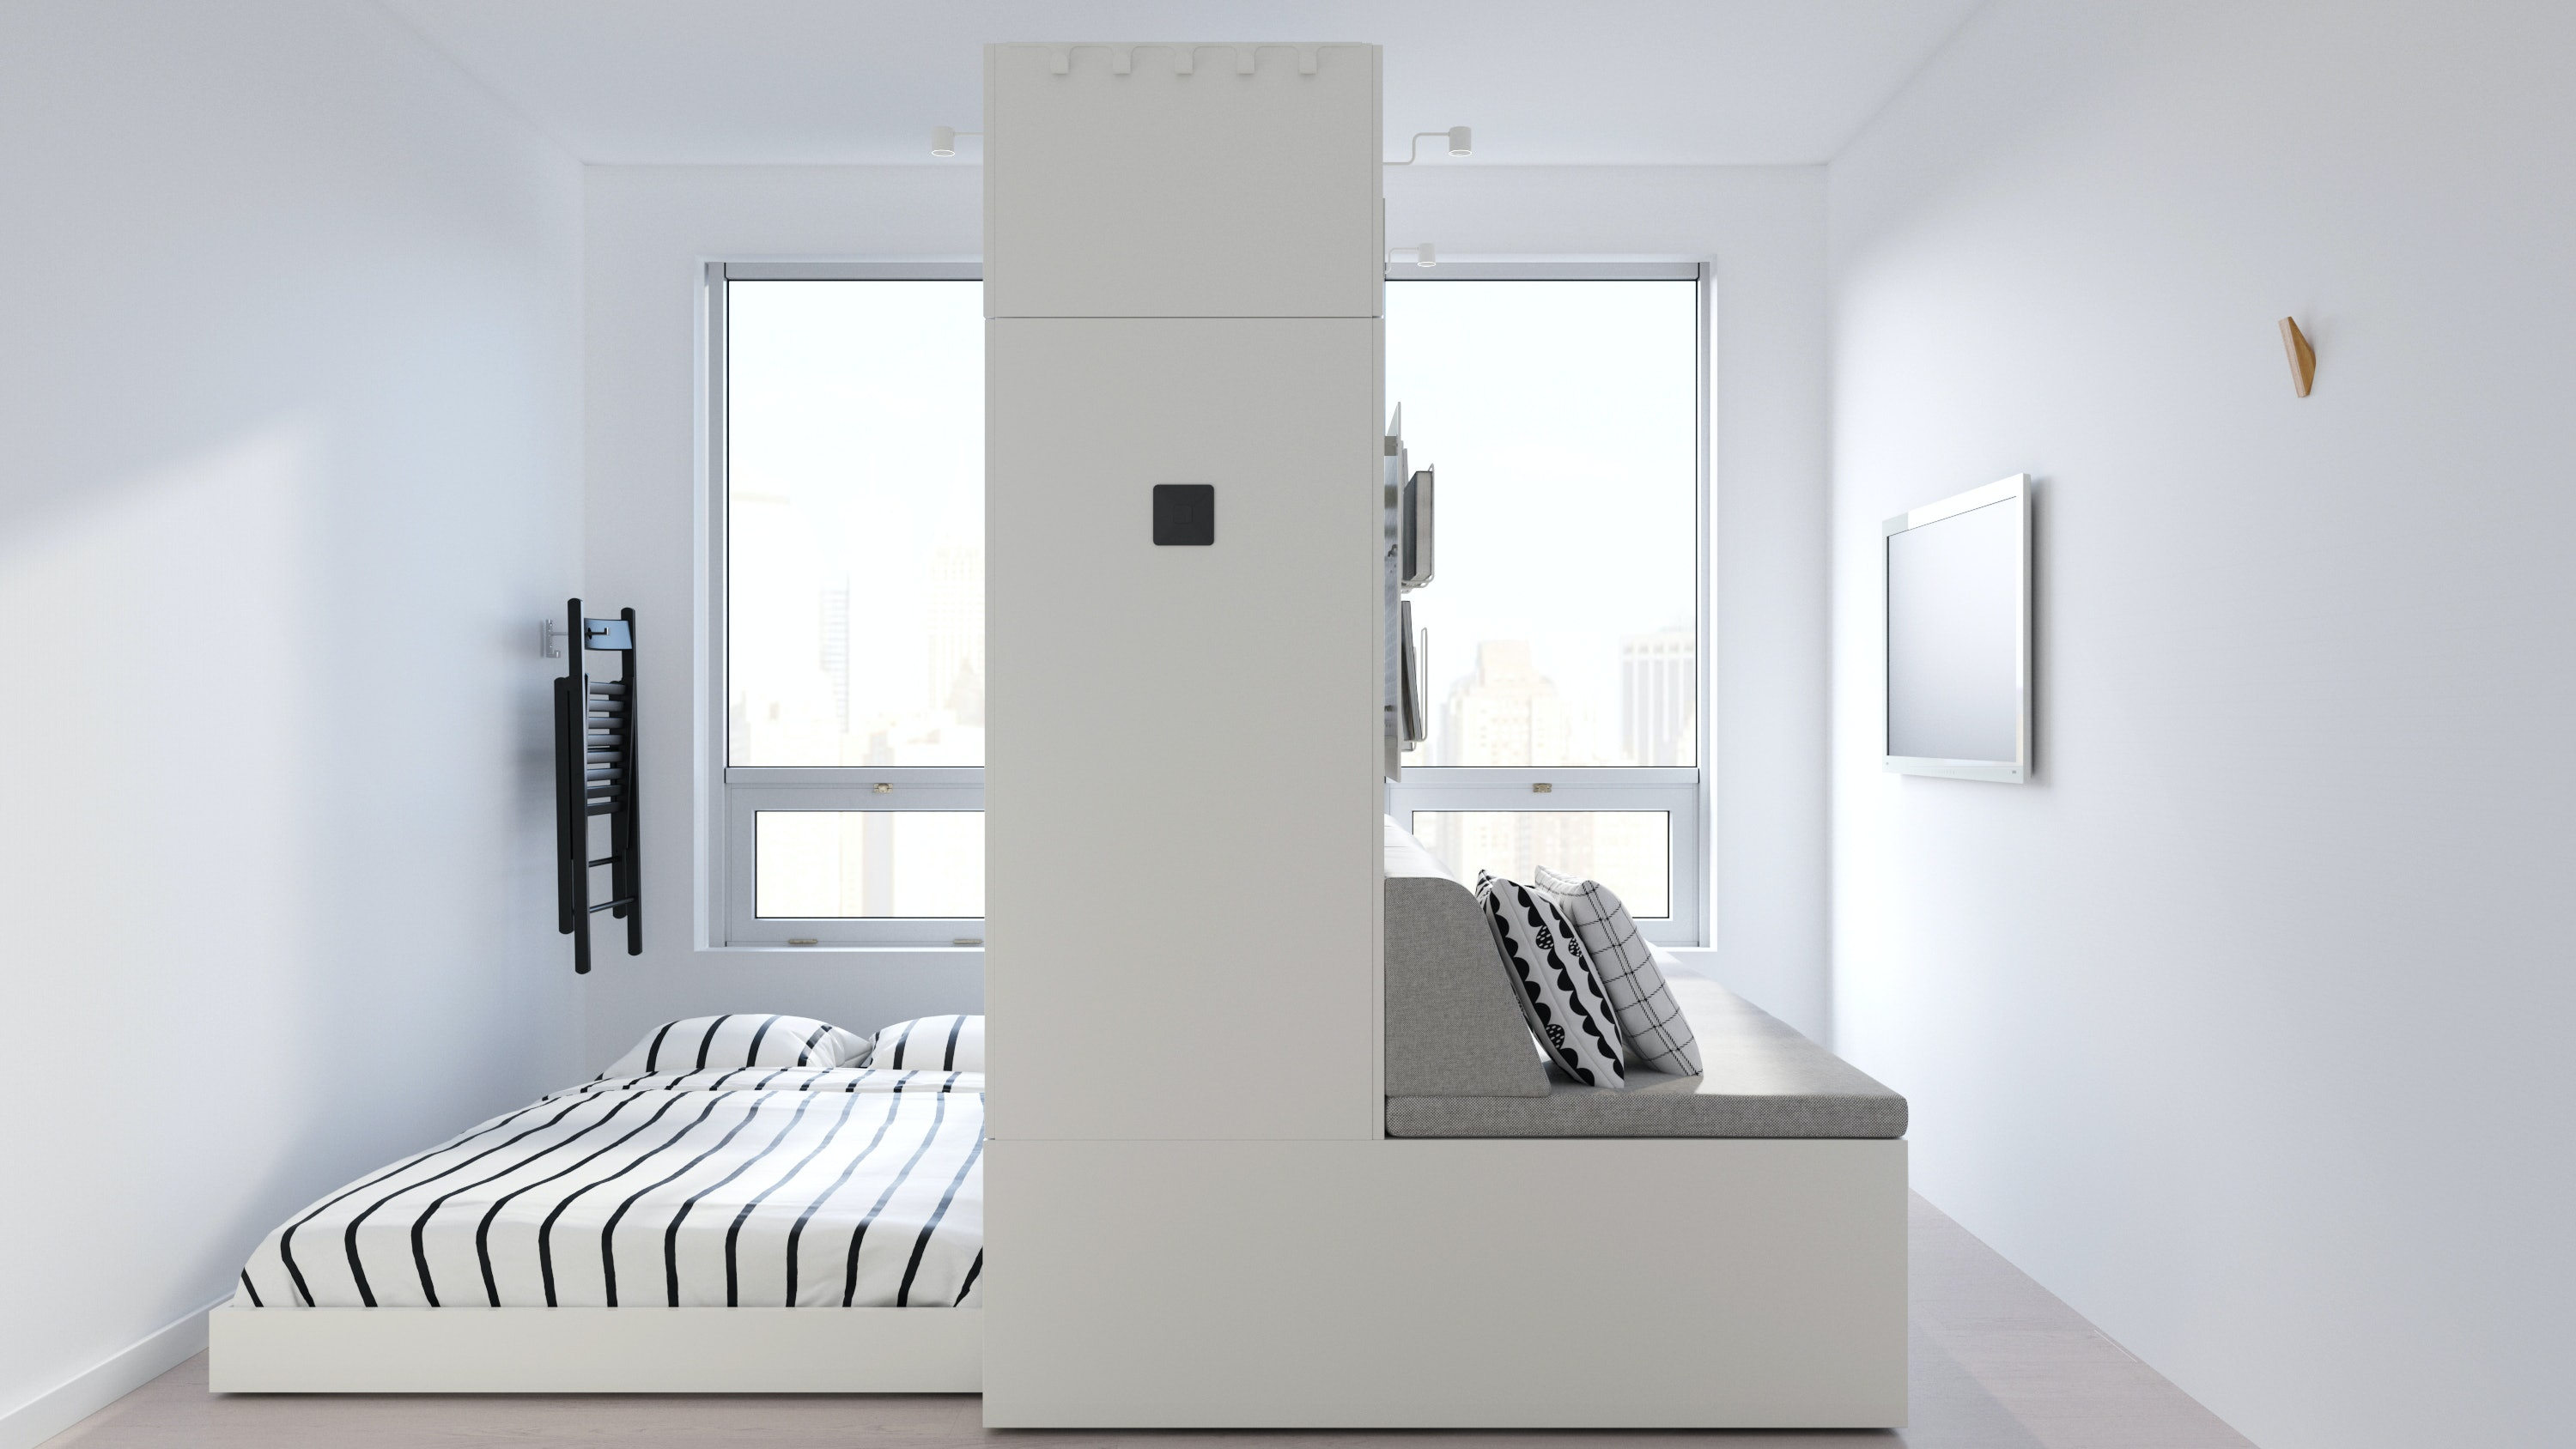 IKEAu0027s ROGNAN Robotic Furniture Turns Small Spaces Into Multi Functional  Homes